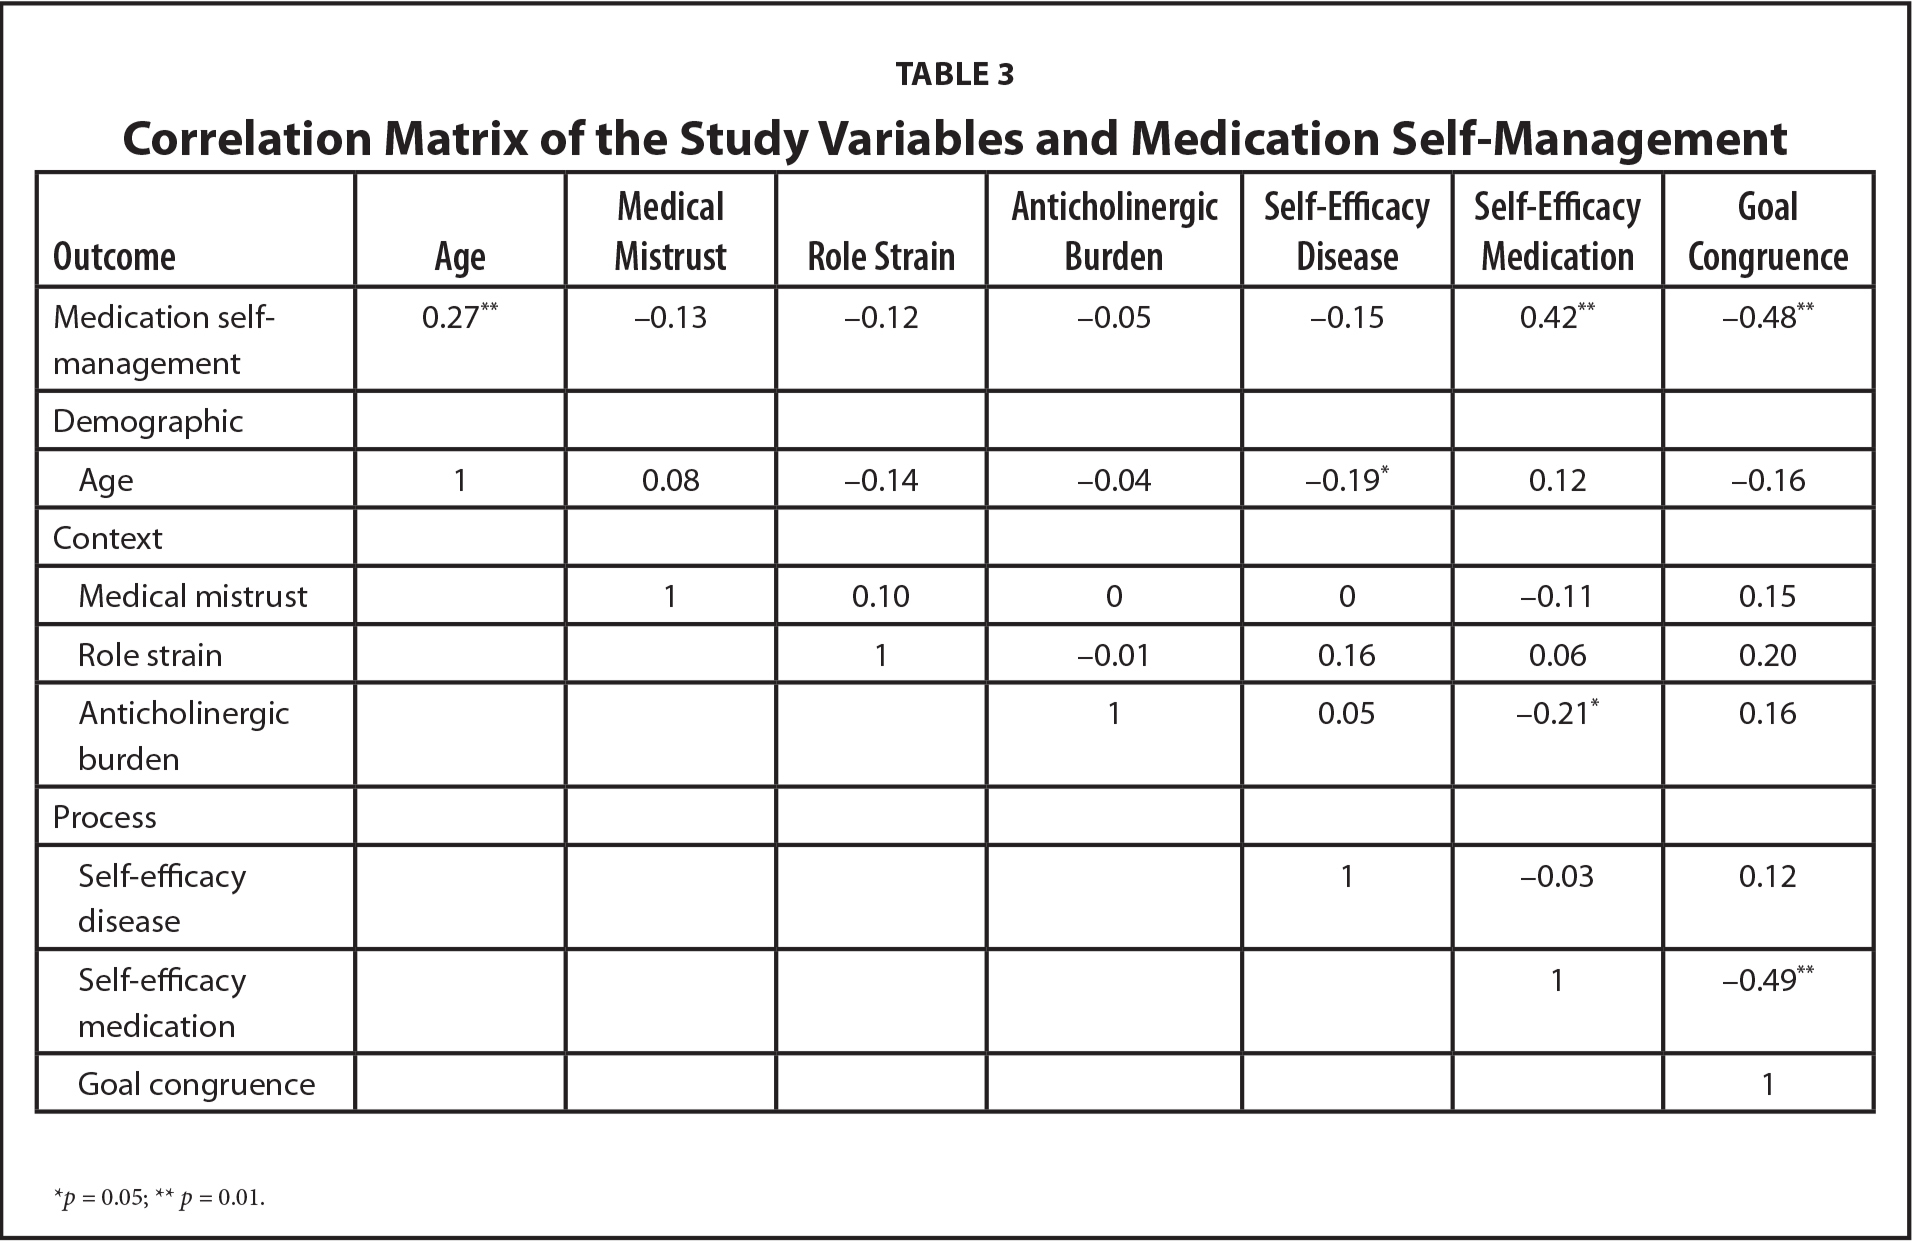 Correlation Matrix of the Study Variables and Medication Self-Management